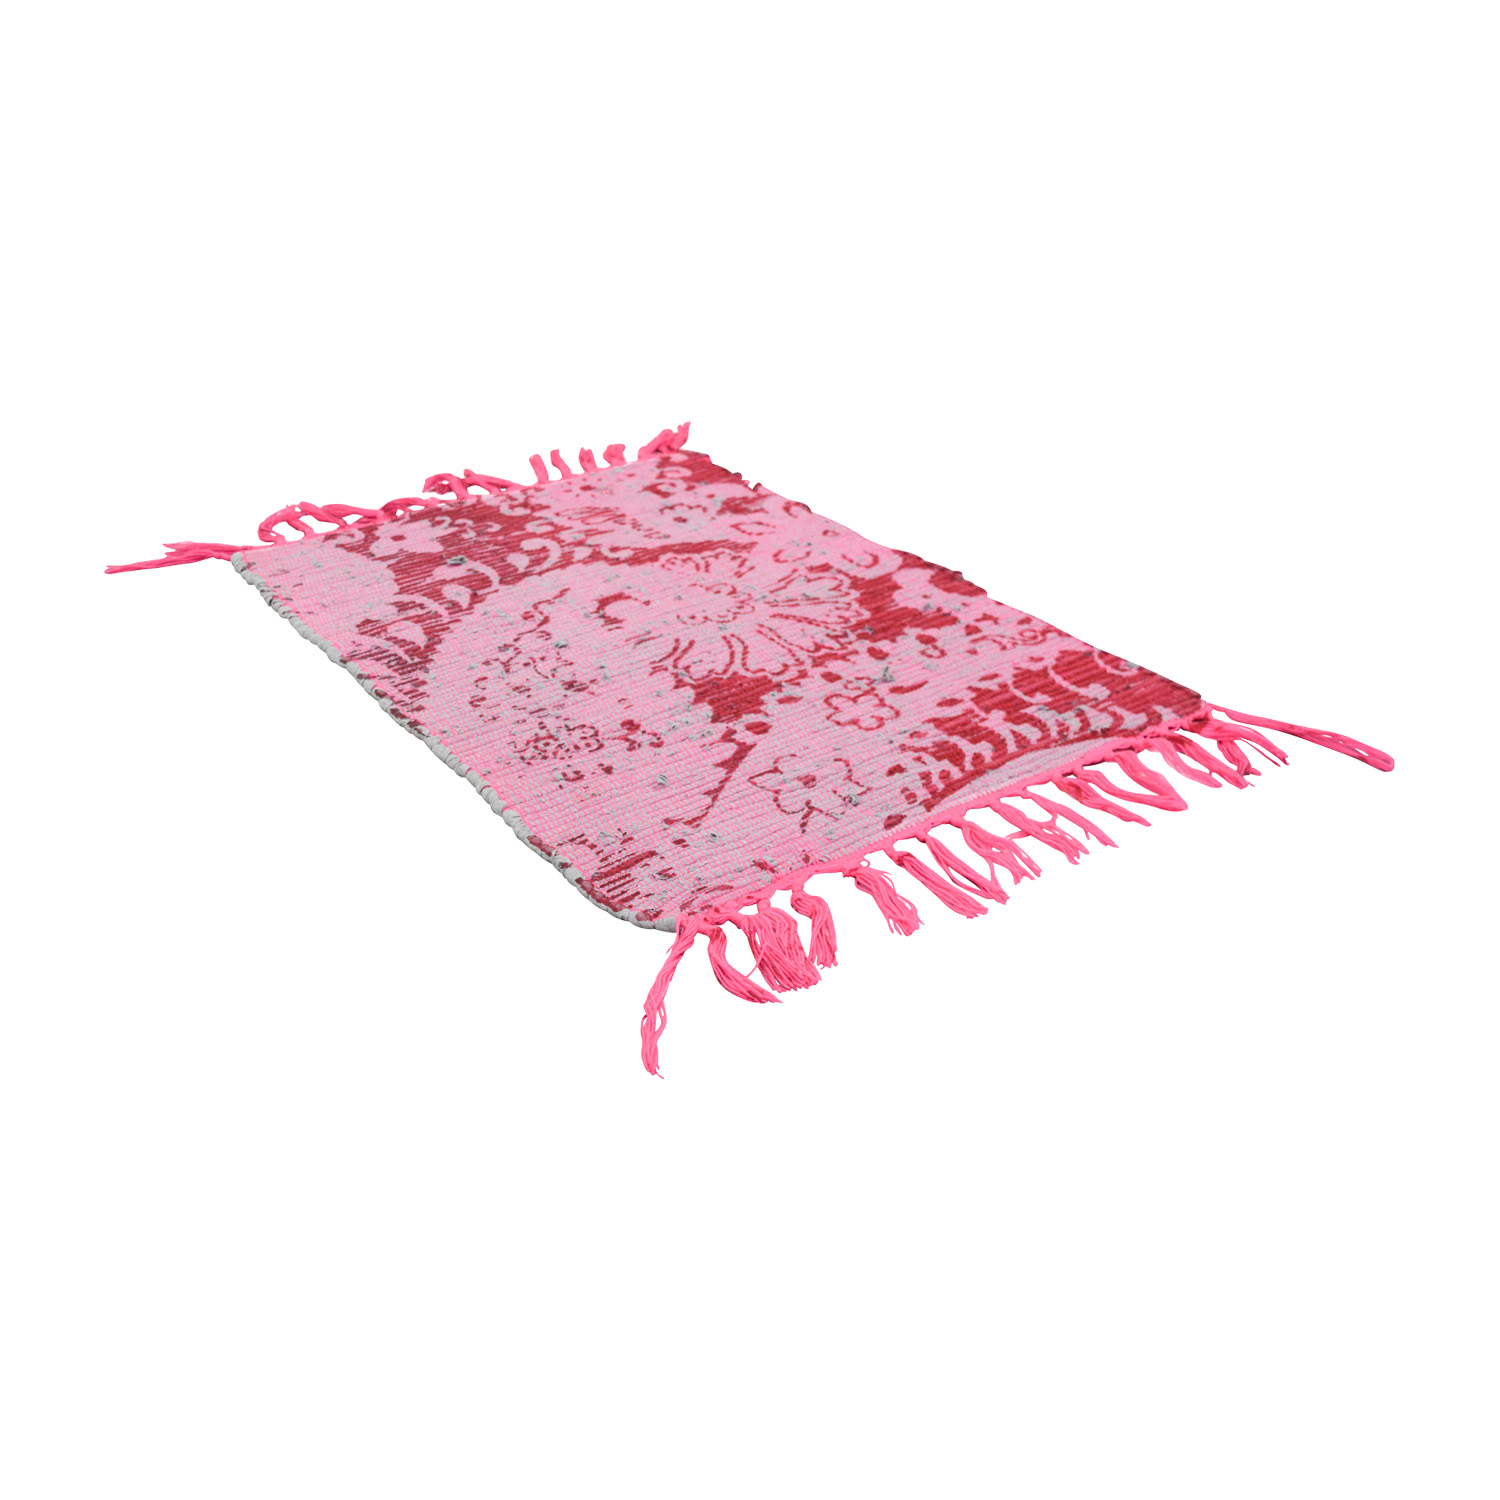 Obeetee Obeetee Pink Rug price